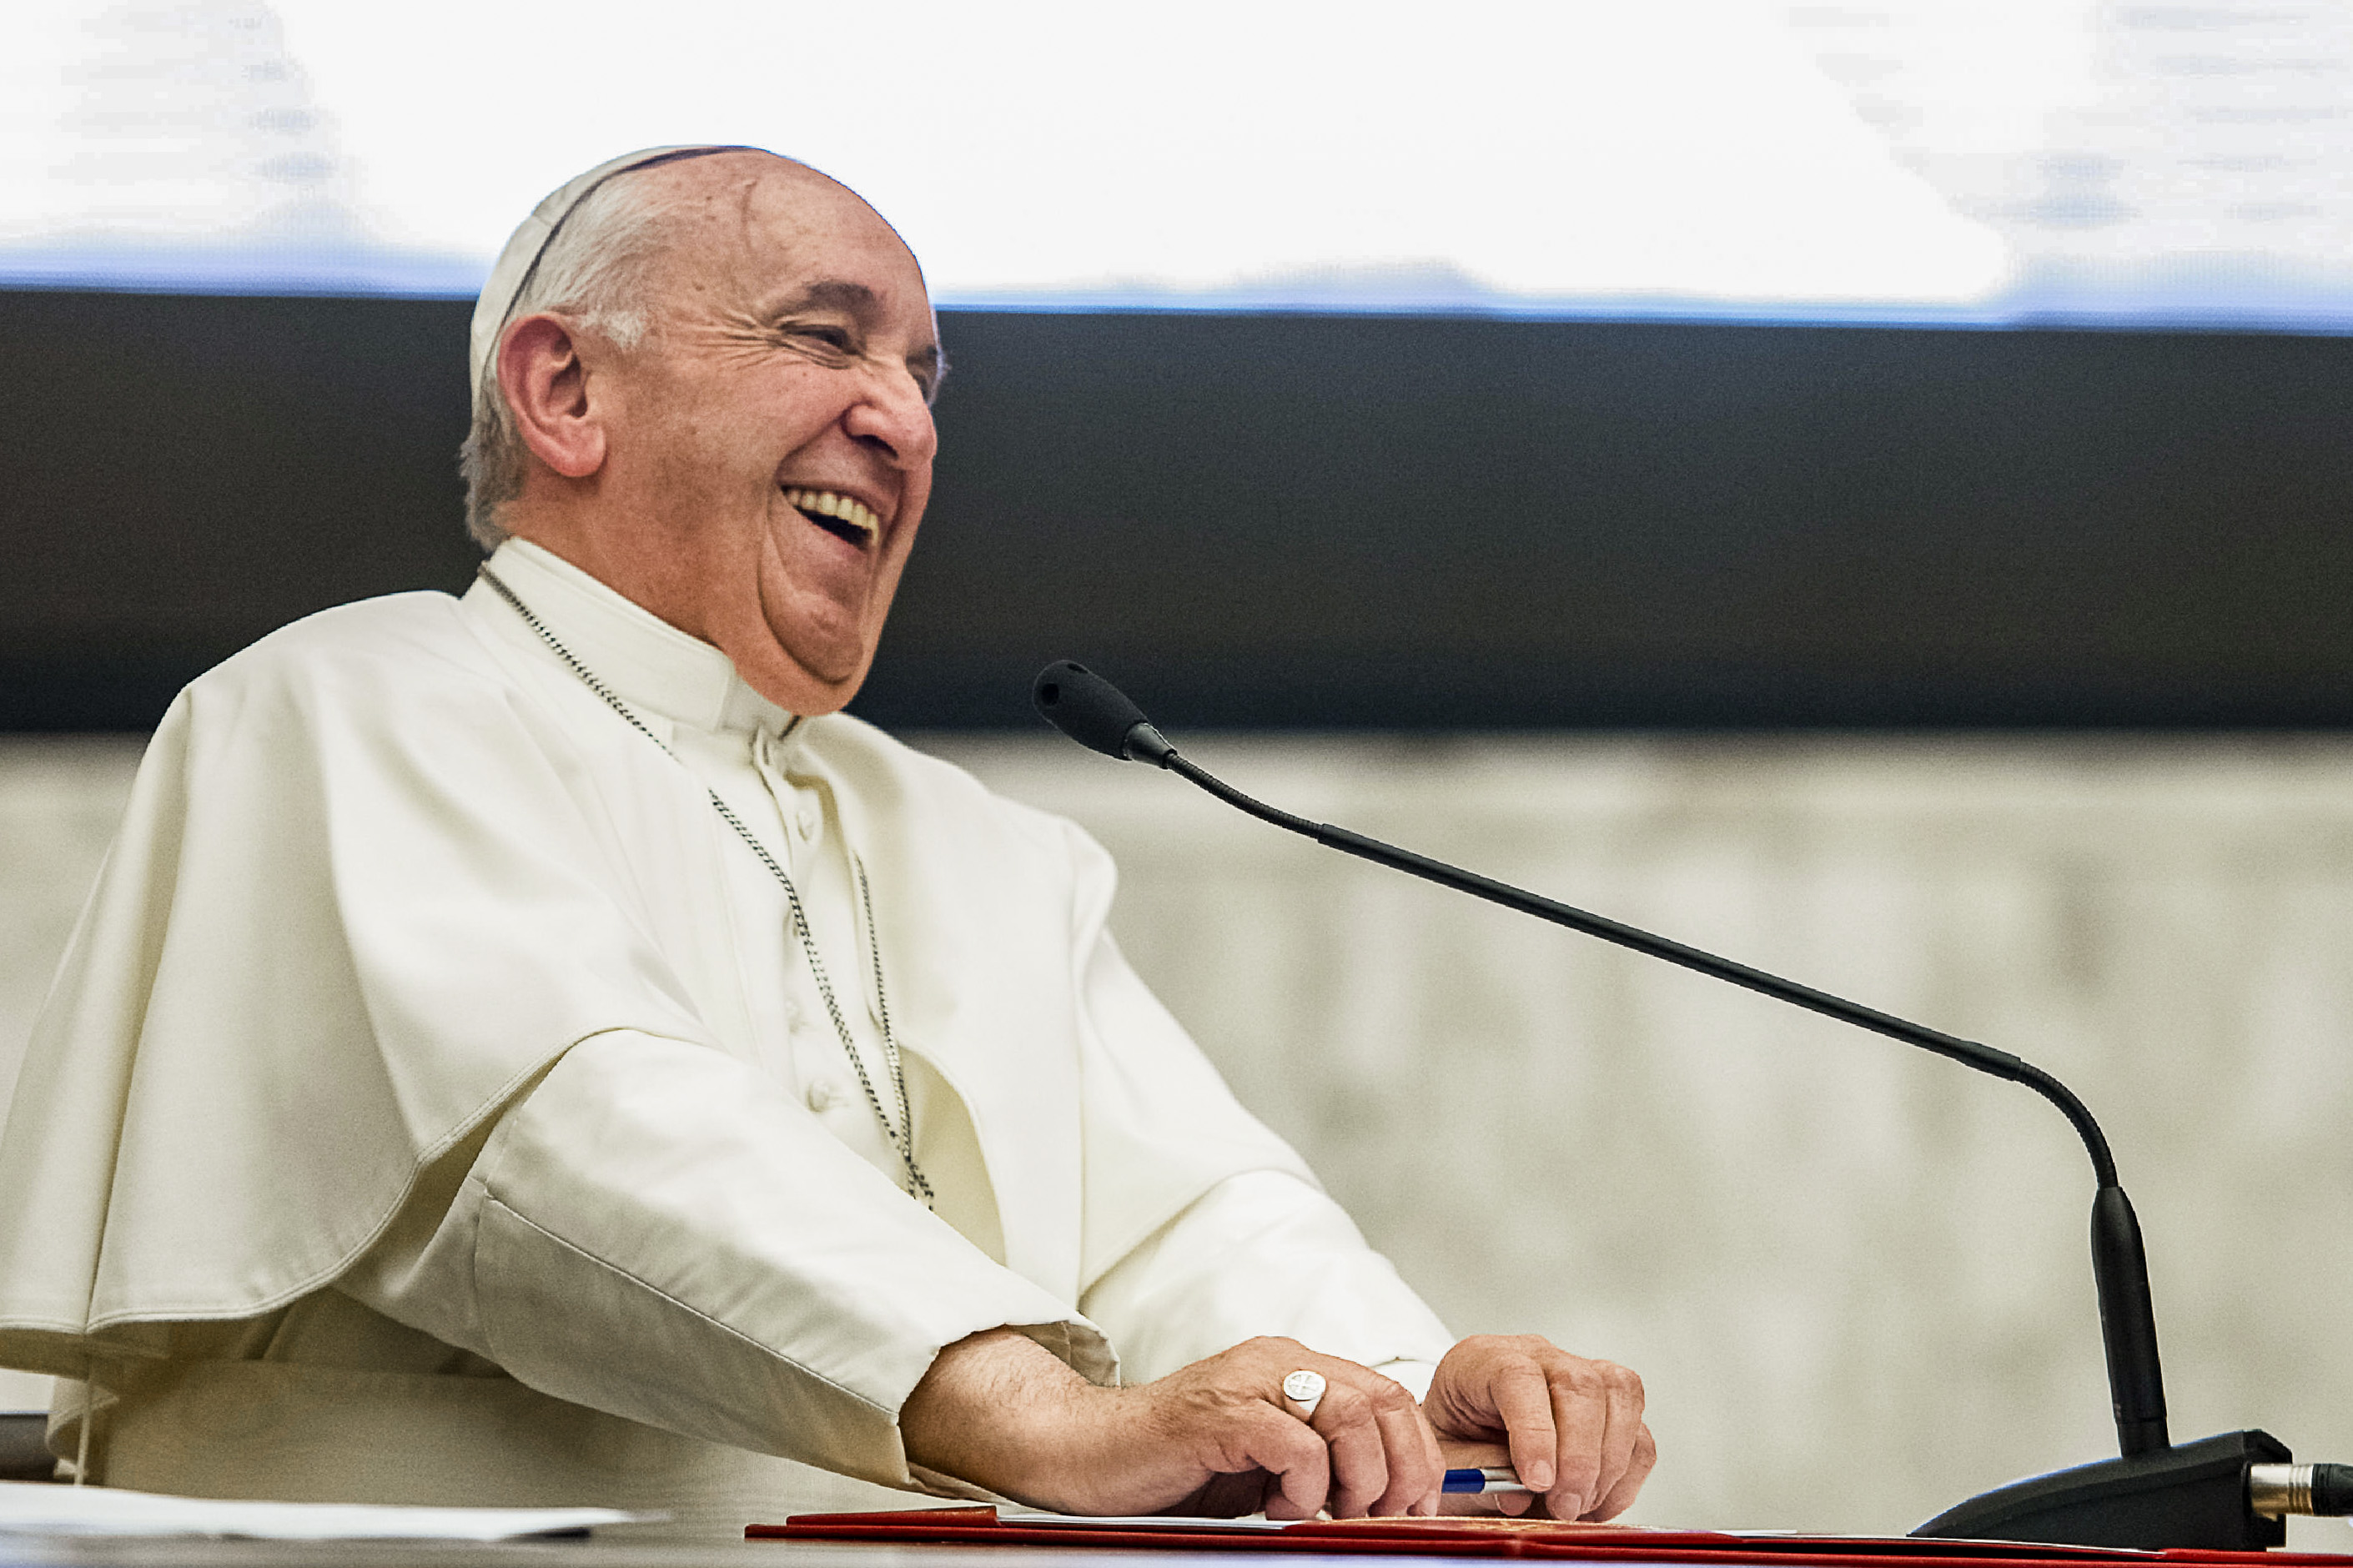 Pope Francis smiles during a meeting with 850 superiors general on 10 May 2019 at the Vatican, who were in Rome for the plenary assembly of the International Union of Superiors General. The organisation represents more than 450,000 sisters in more than 100 countries. Photo: Vatican Media/Reuters.